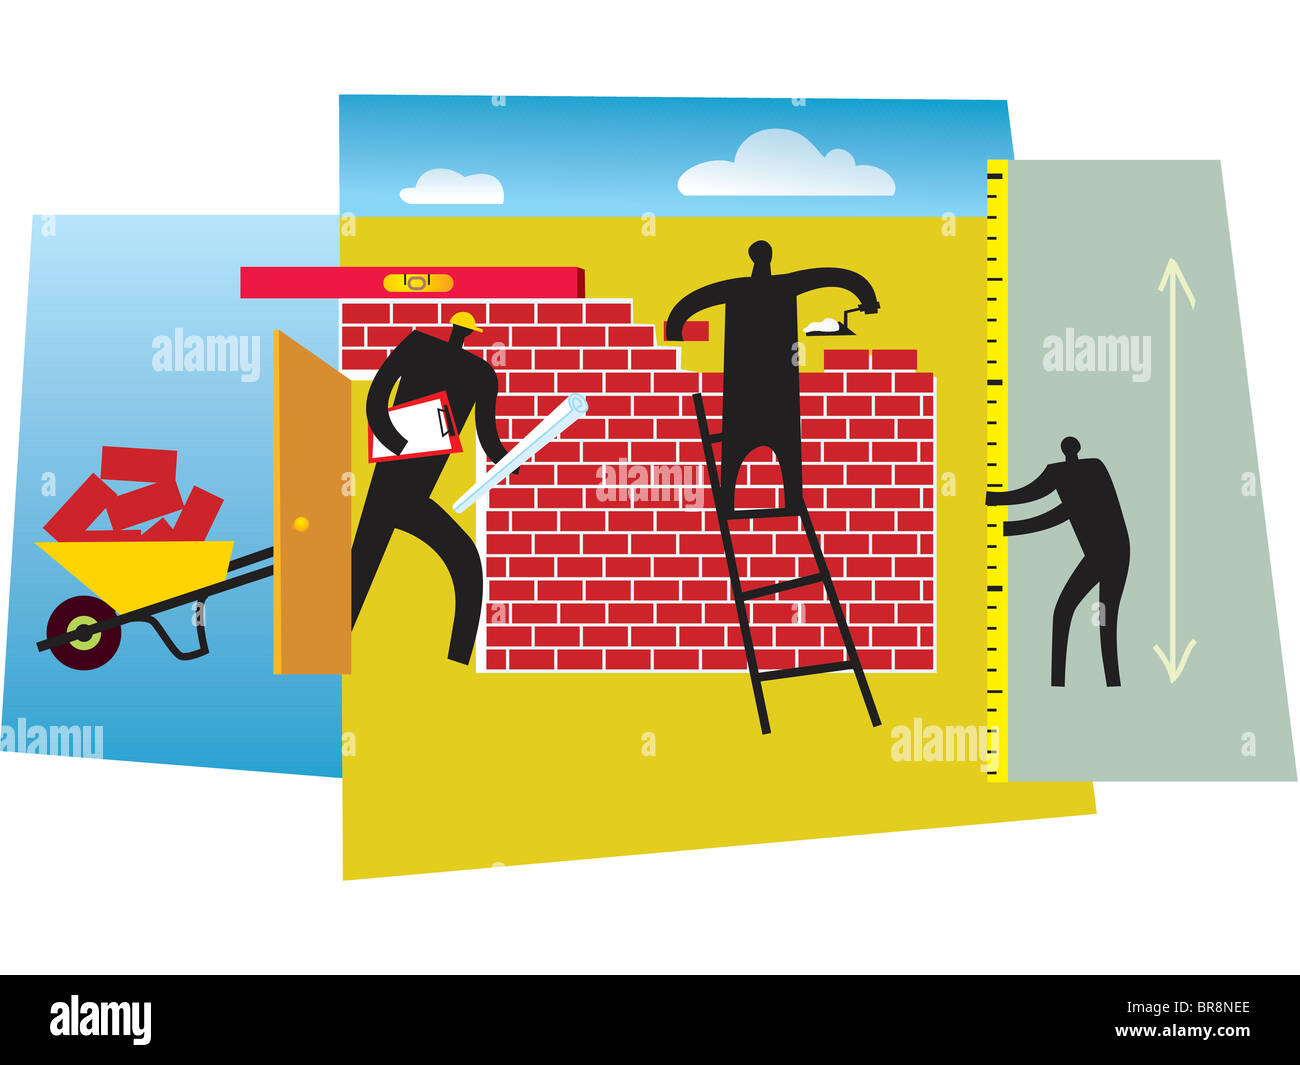 People building a brick wall Stock Photo: 31539942 - Alamy